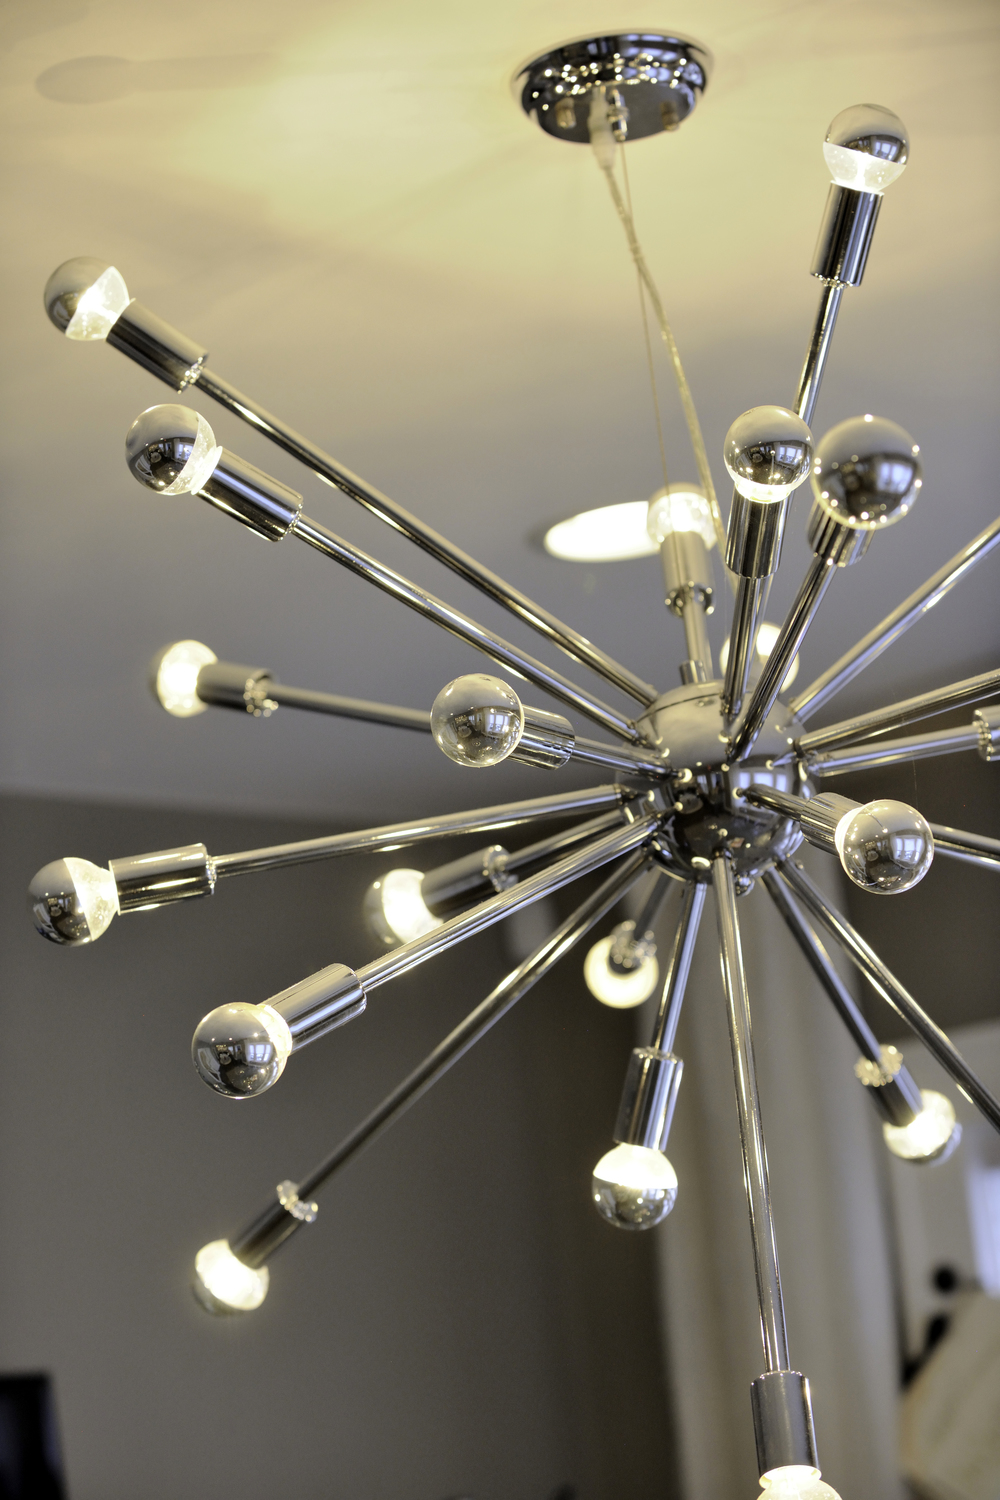 A closeup of the gorgeous contemporary chandelier above the conference table.